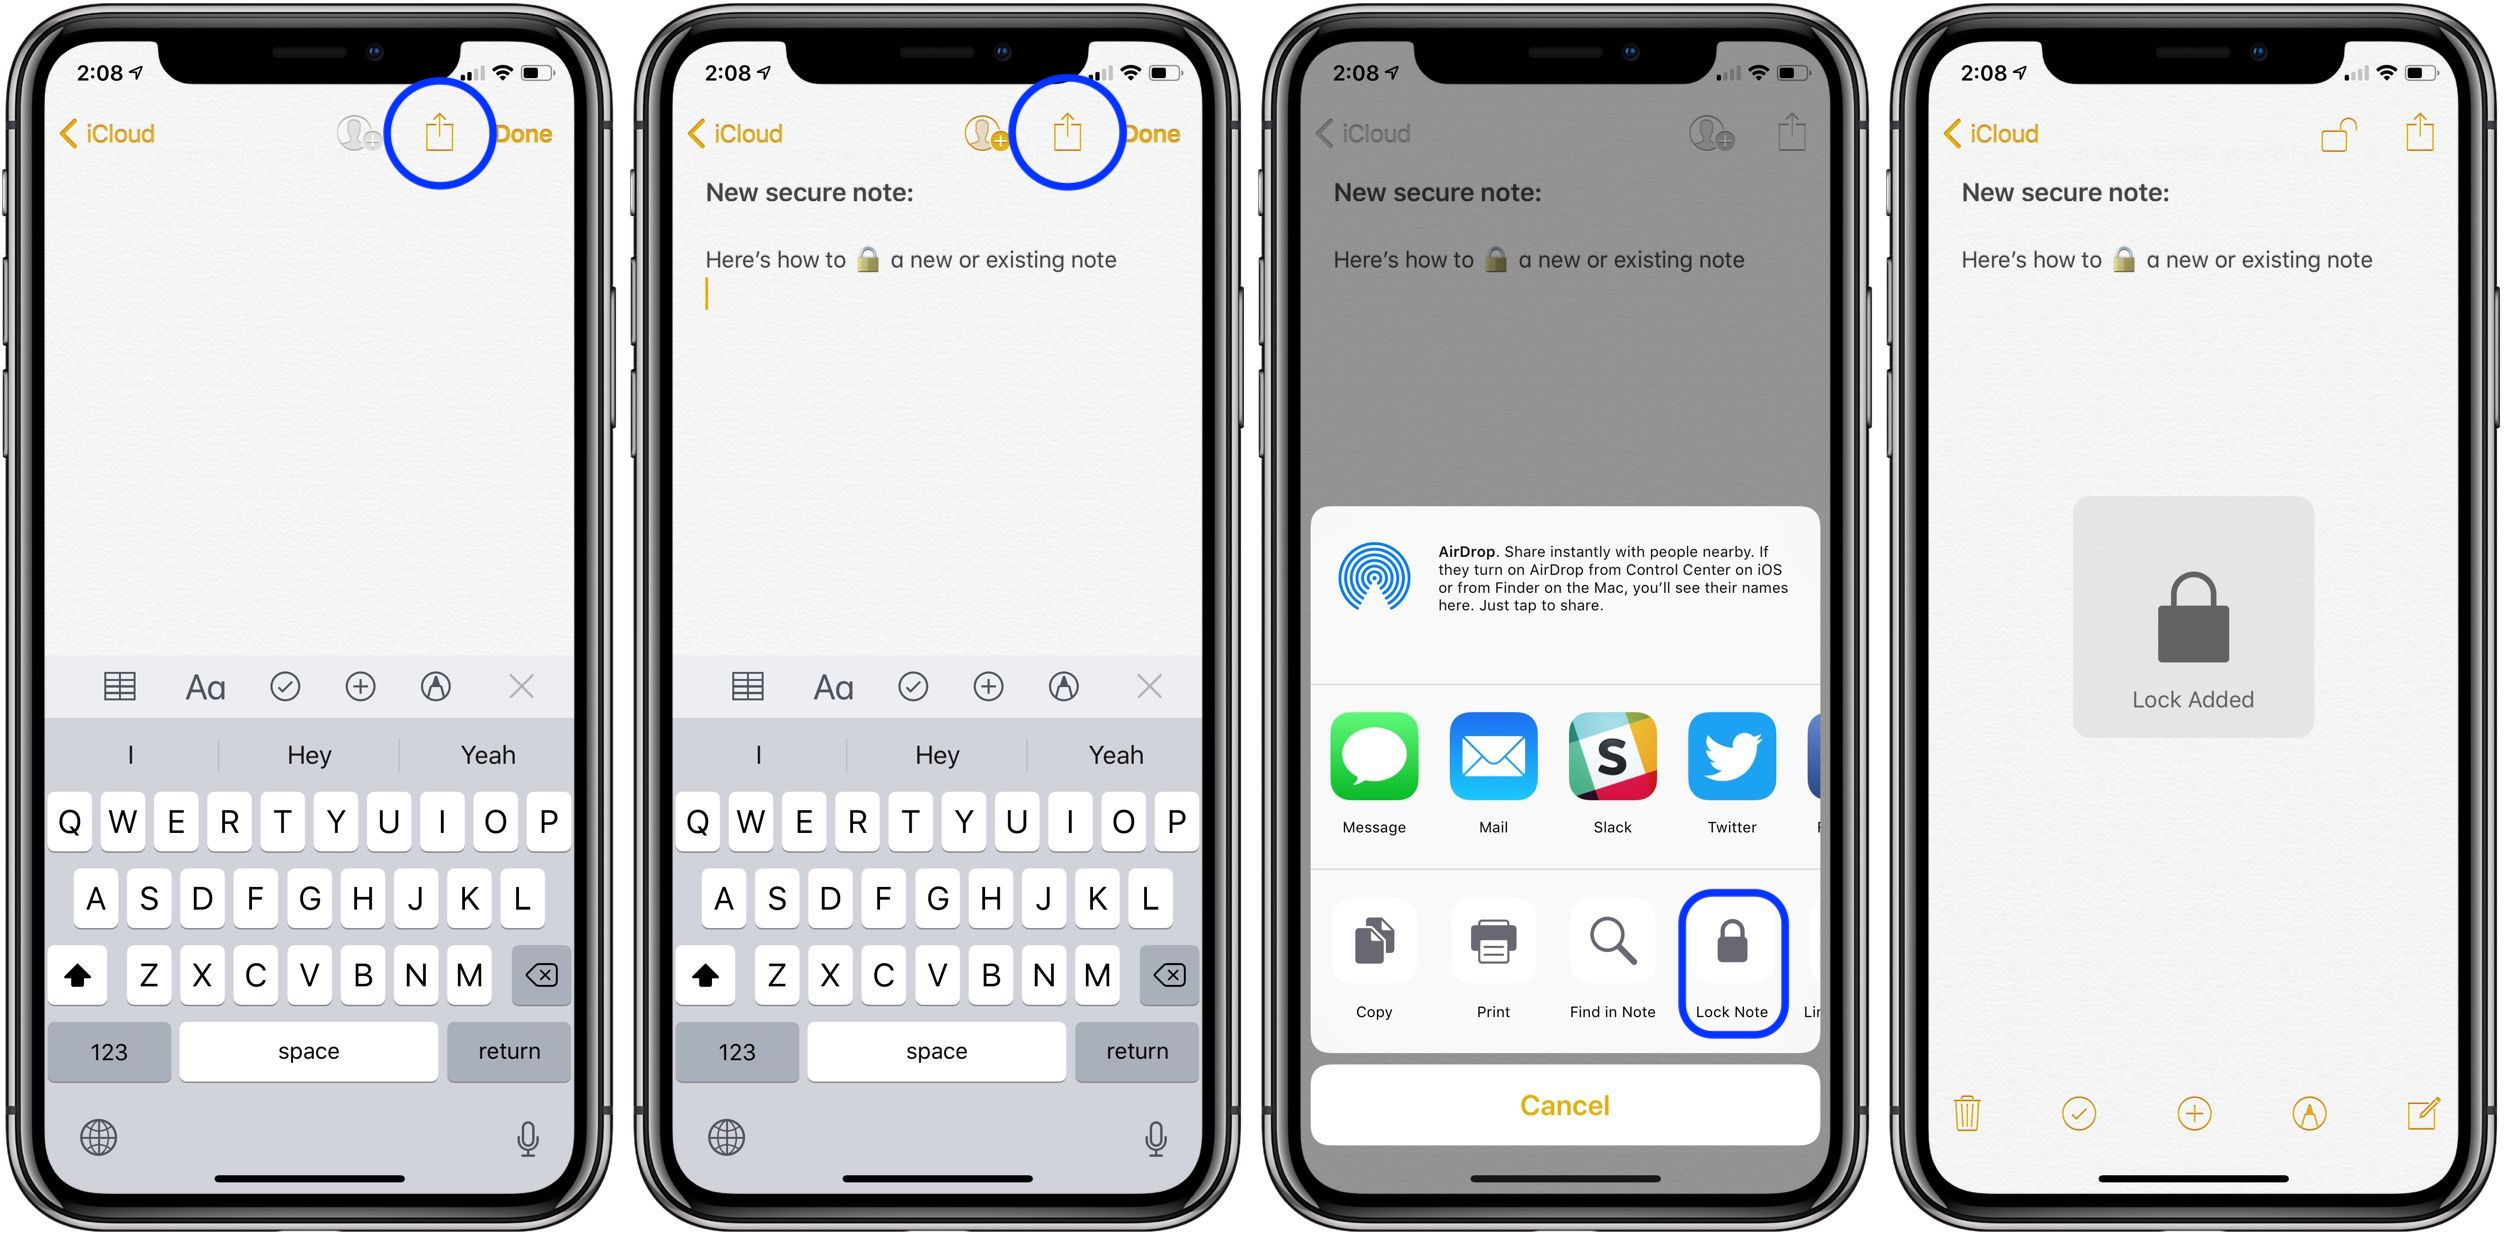 How to lock notes on iPhone and iPad - 9to5Mac